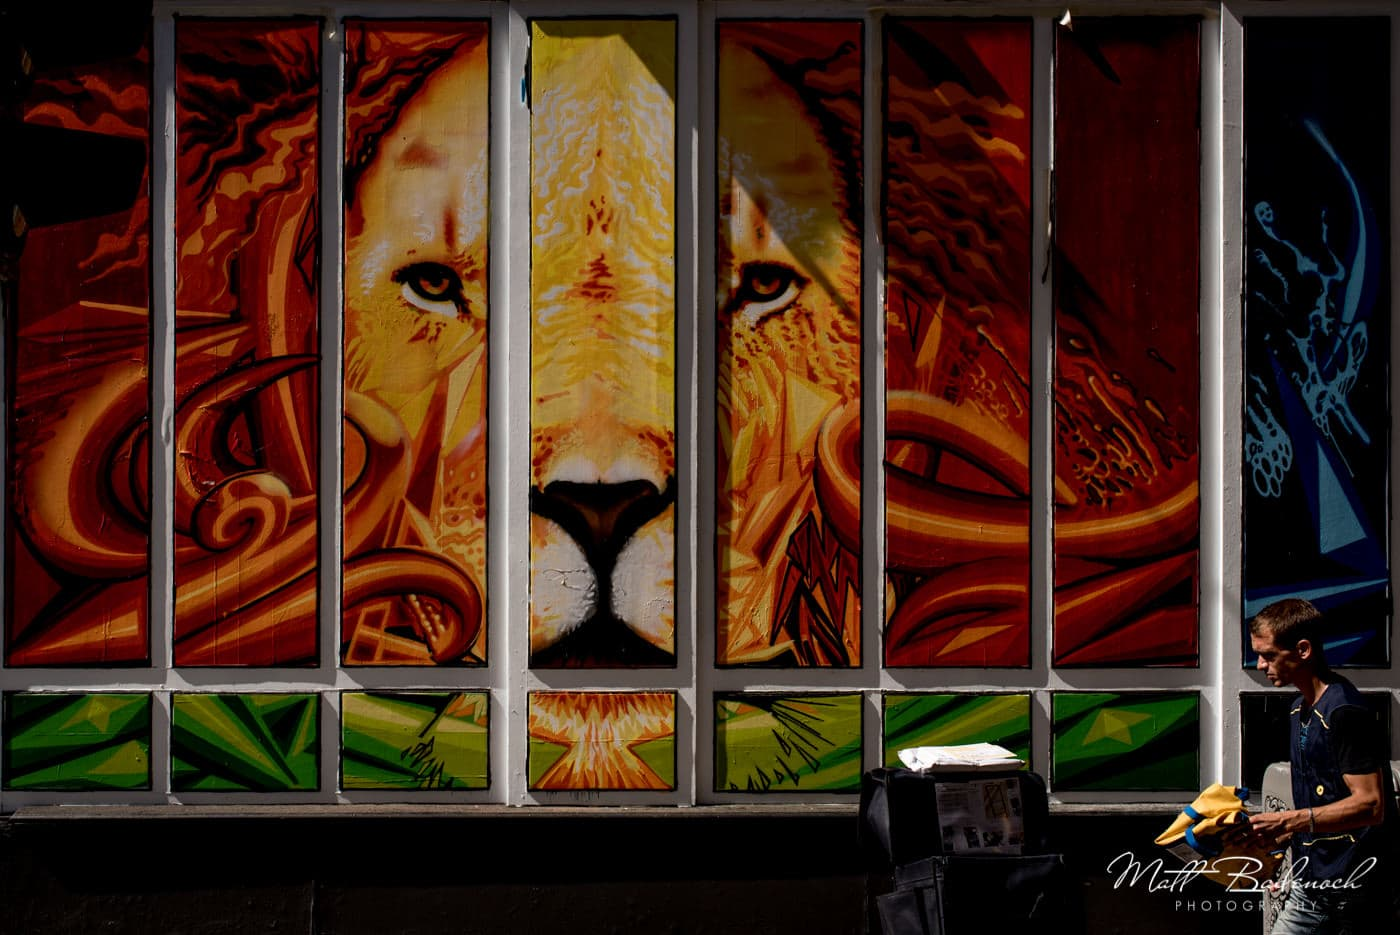 Lion grafitti/ street art | bordeaux street photography